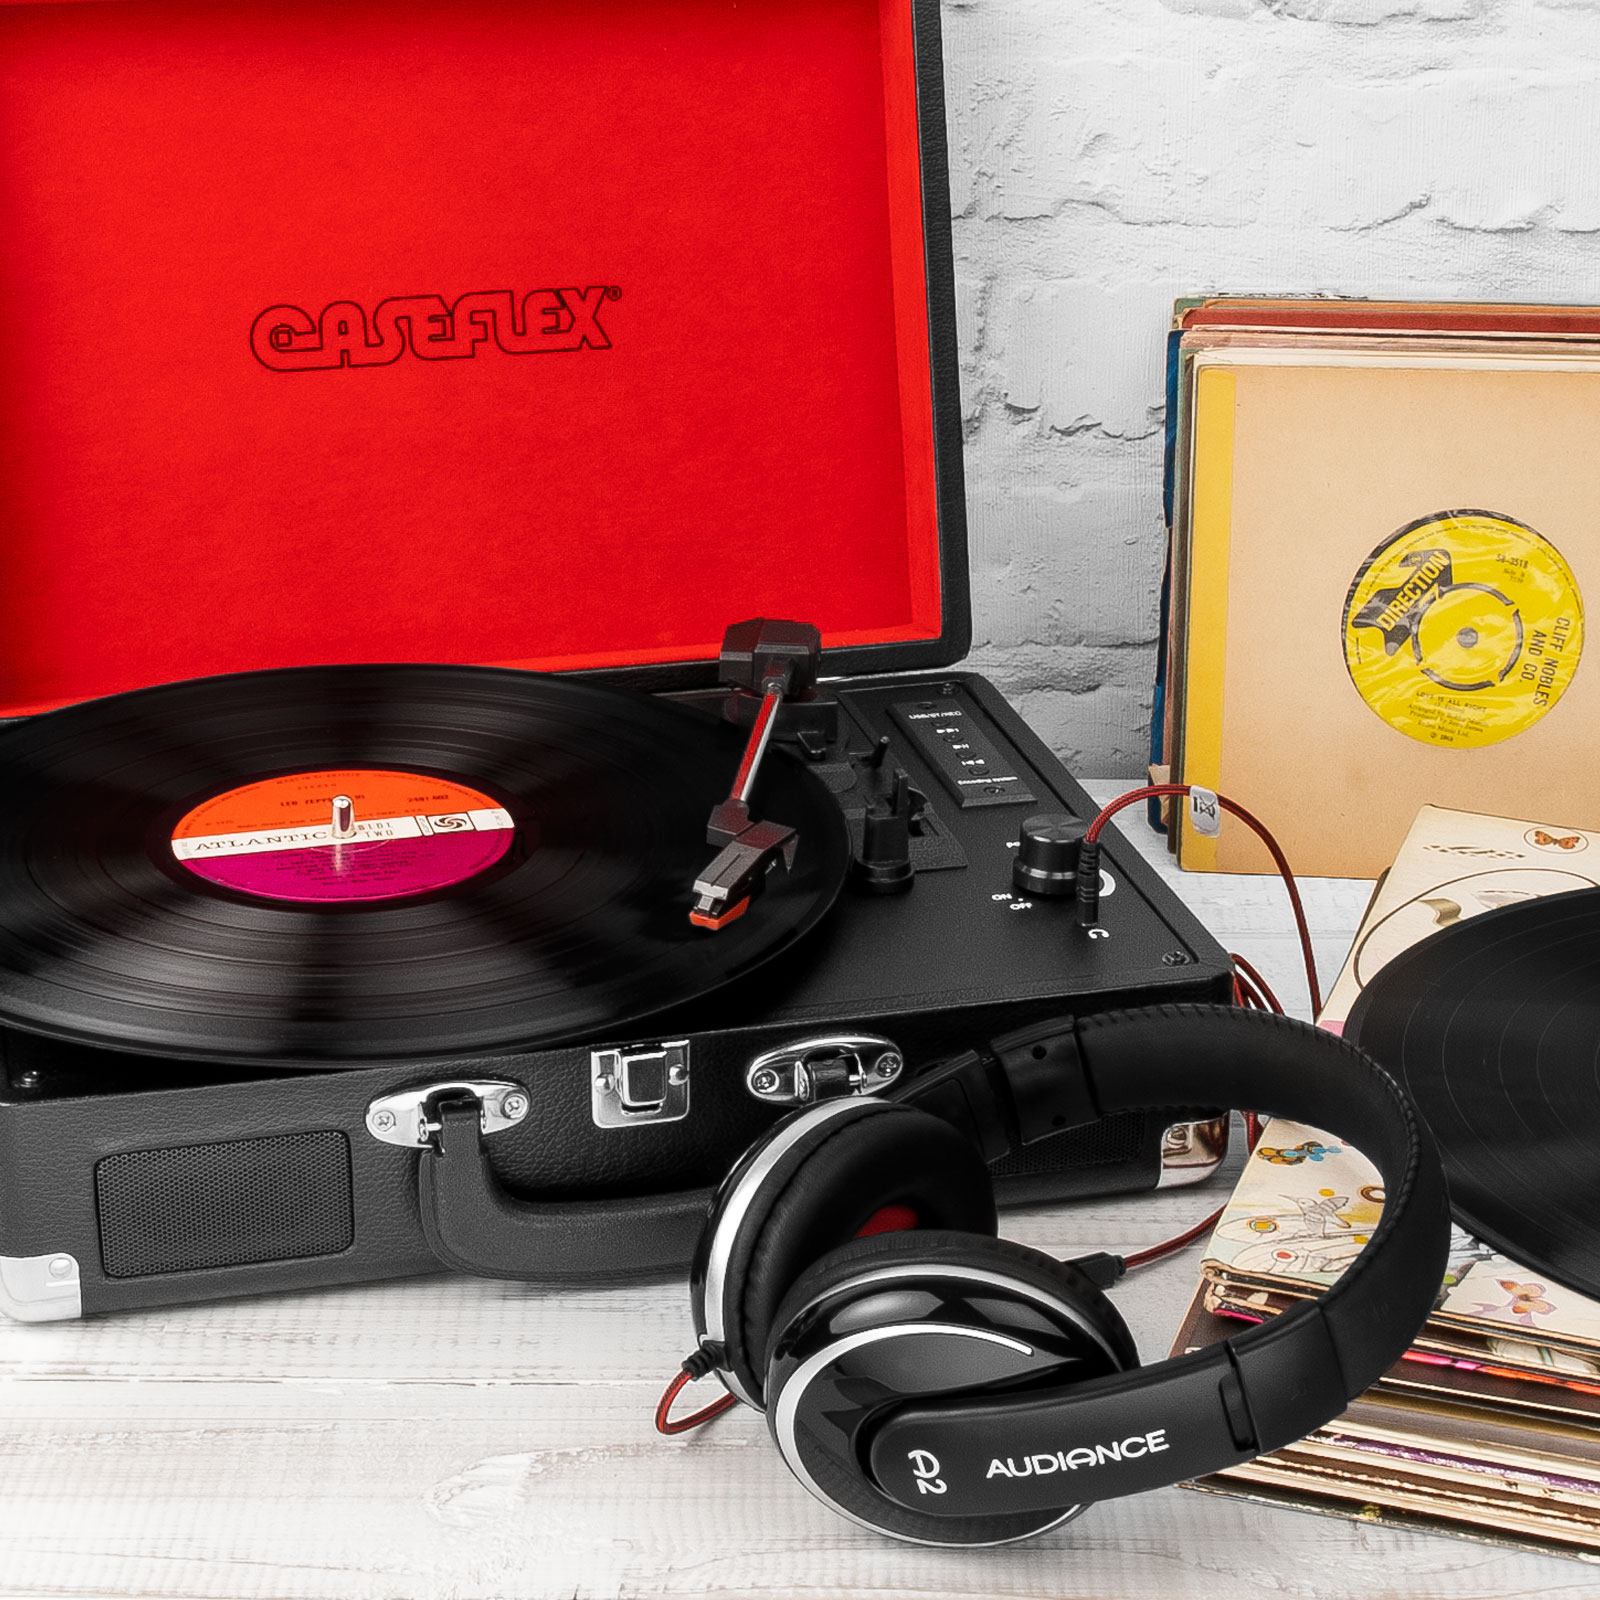 Caseflex Turntable Record Player Briefcase [3 Speed] Vinyl Recorder & MP3 Player with Built-In Bluetooth Stereo Speakers - Black & Red